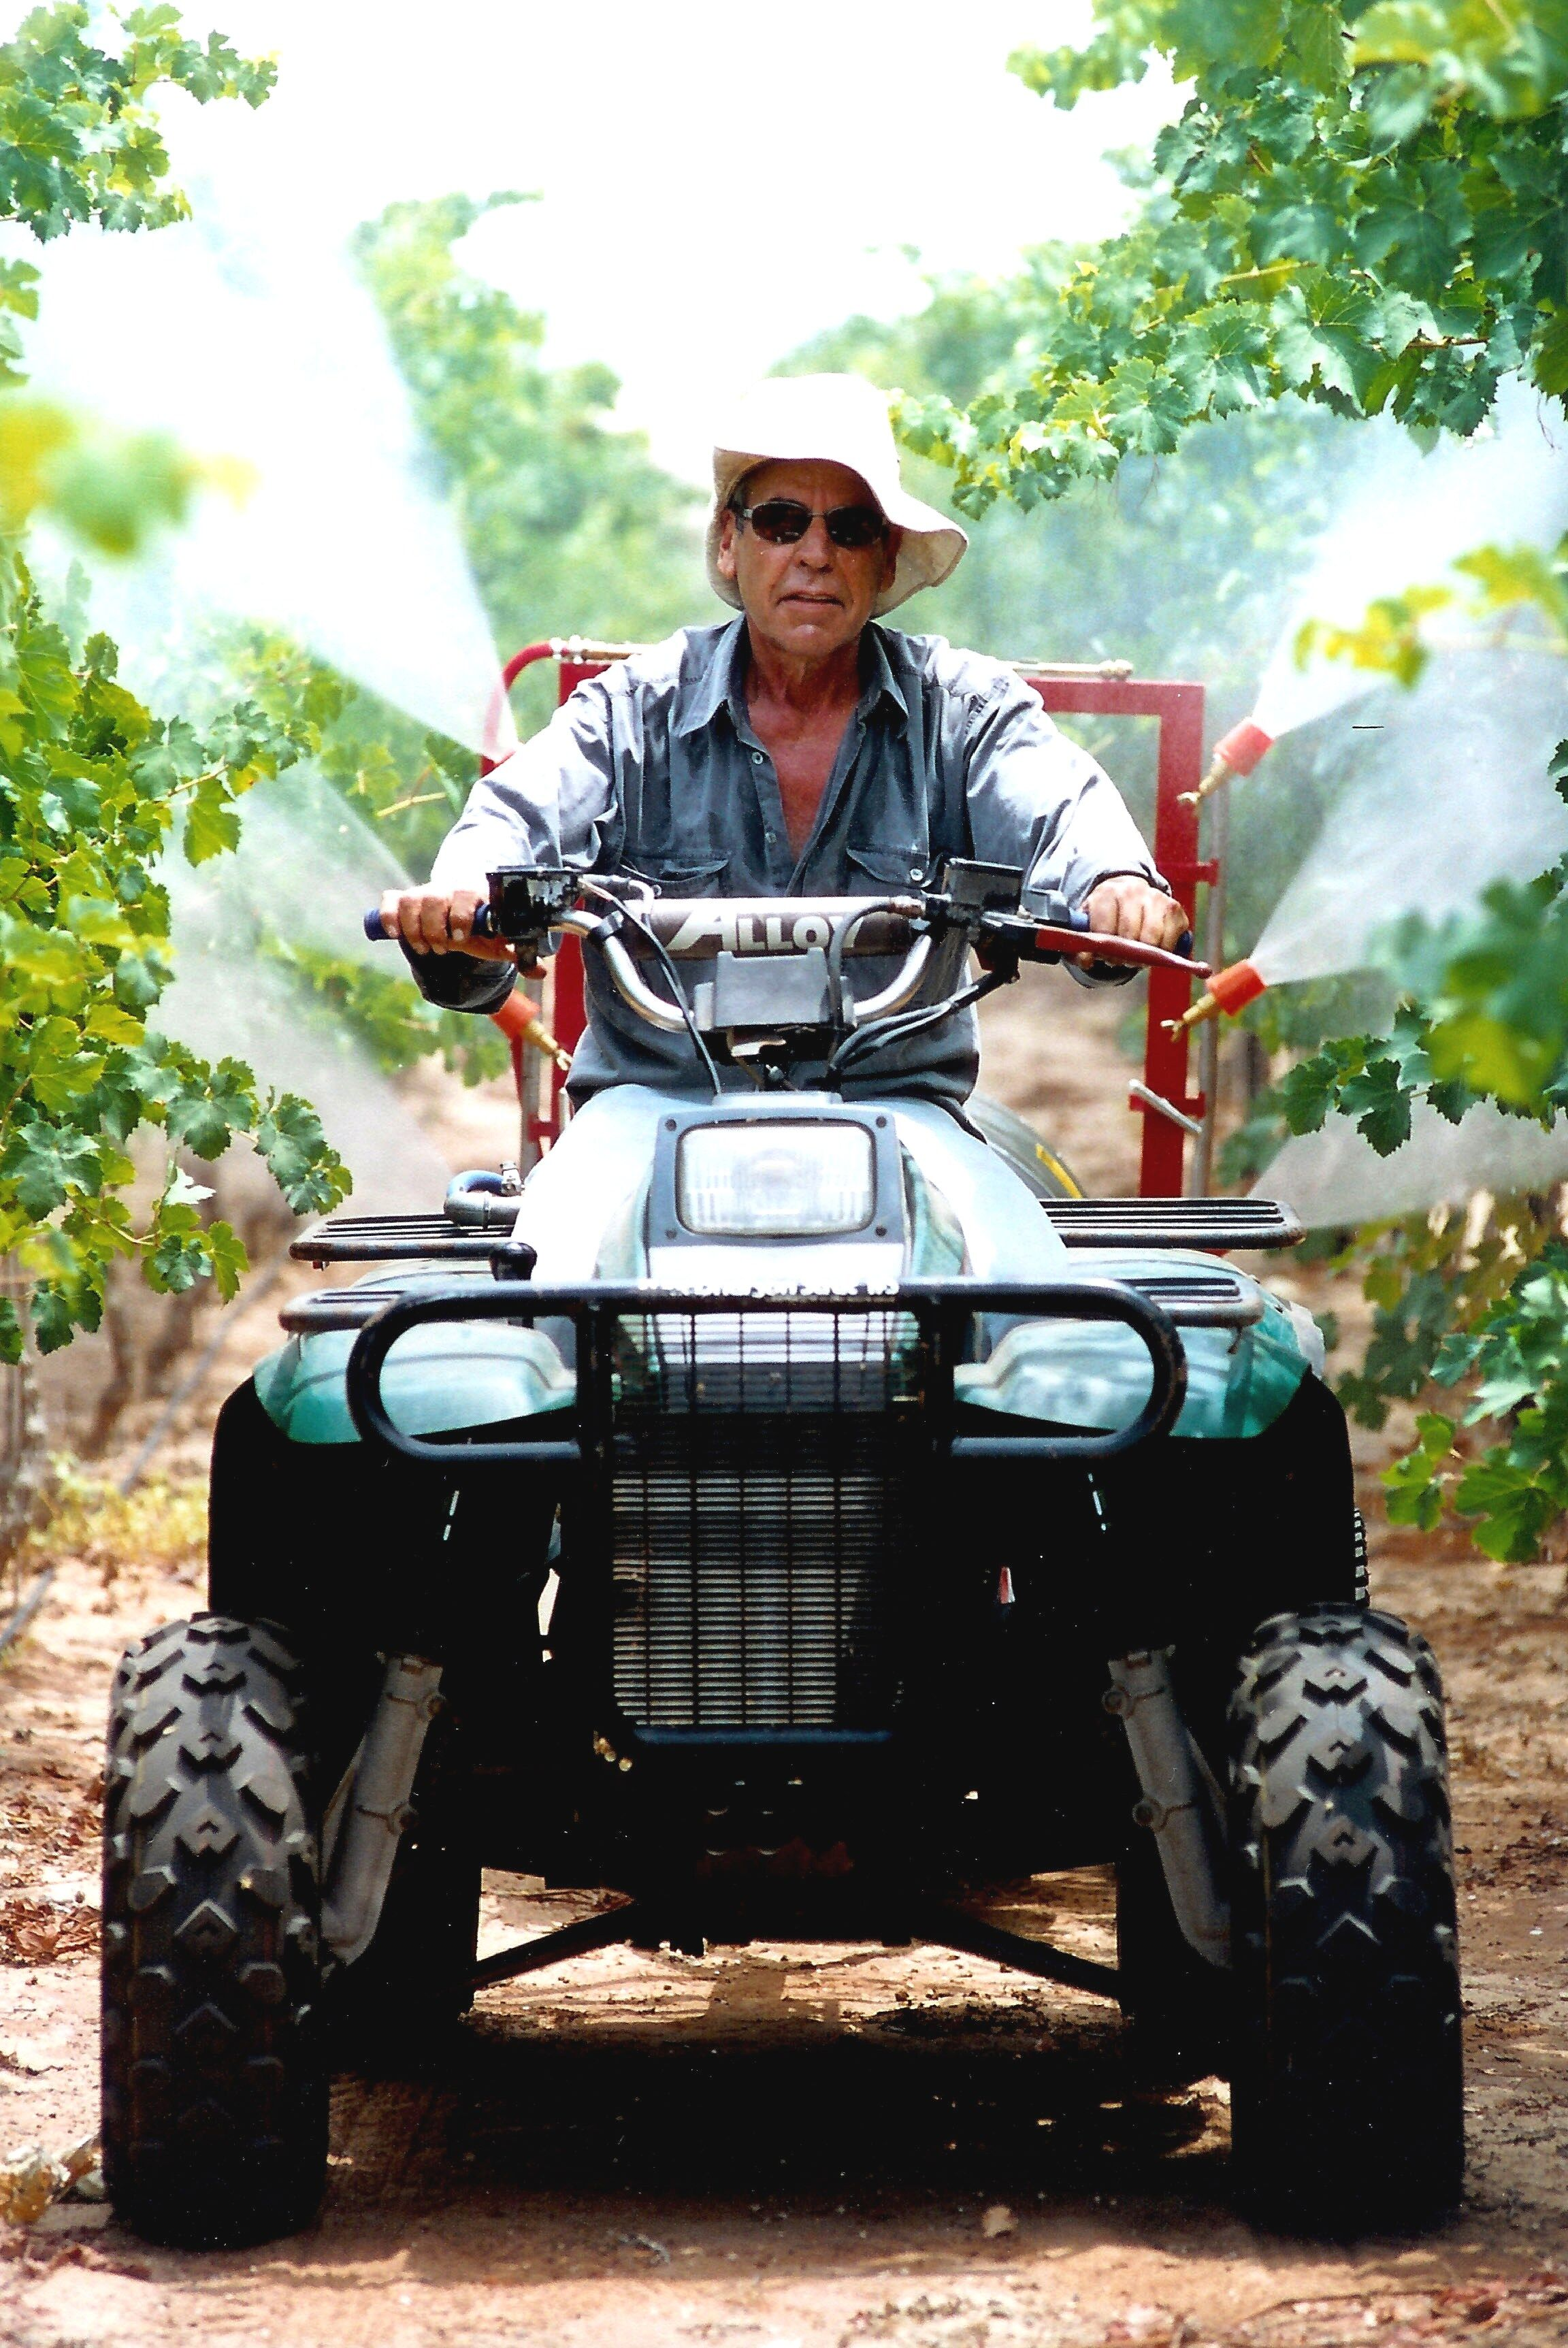 Dr. Yair Margalit  He was a scientist, (in physical chemistry), until he quit his scientific activities and started a second phase of his life as grape grower and wine producer. ( https://margalit-winery.com/en/the-team/ )